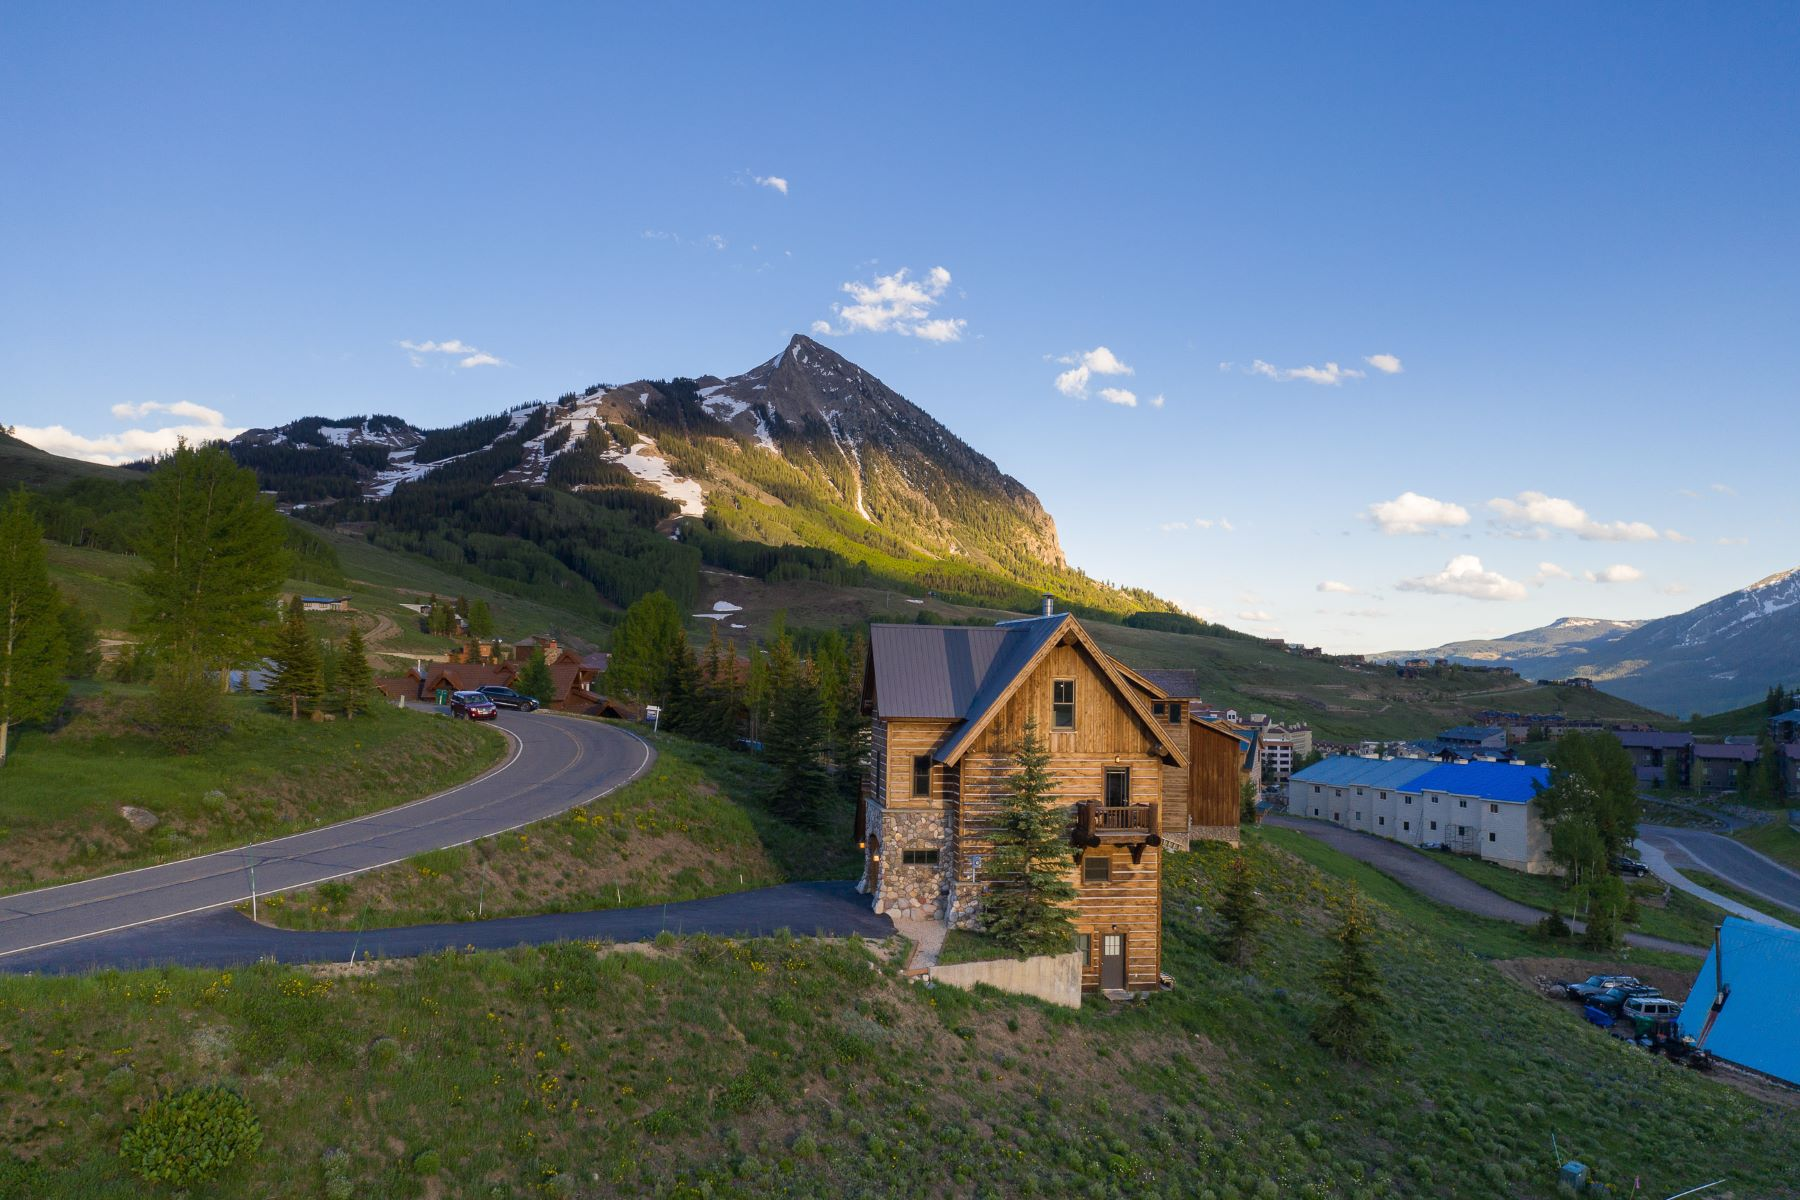 Single Family Homes for Sale at Crested Butte Ski Chalet 15 Whetstone Road Mount Crested Butte, Colorado 81225 United States